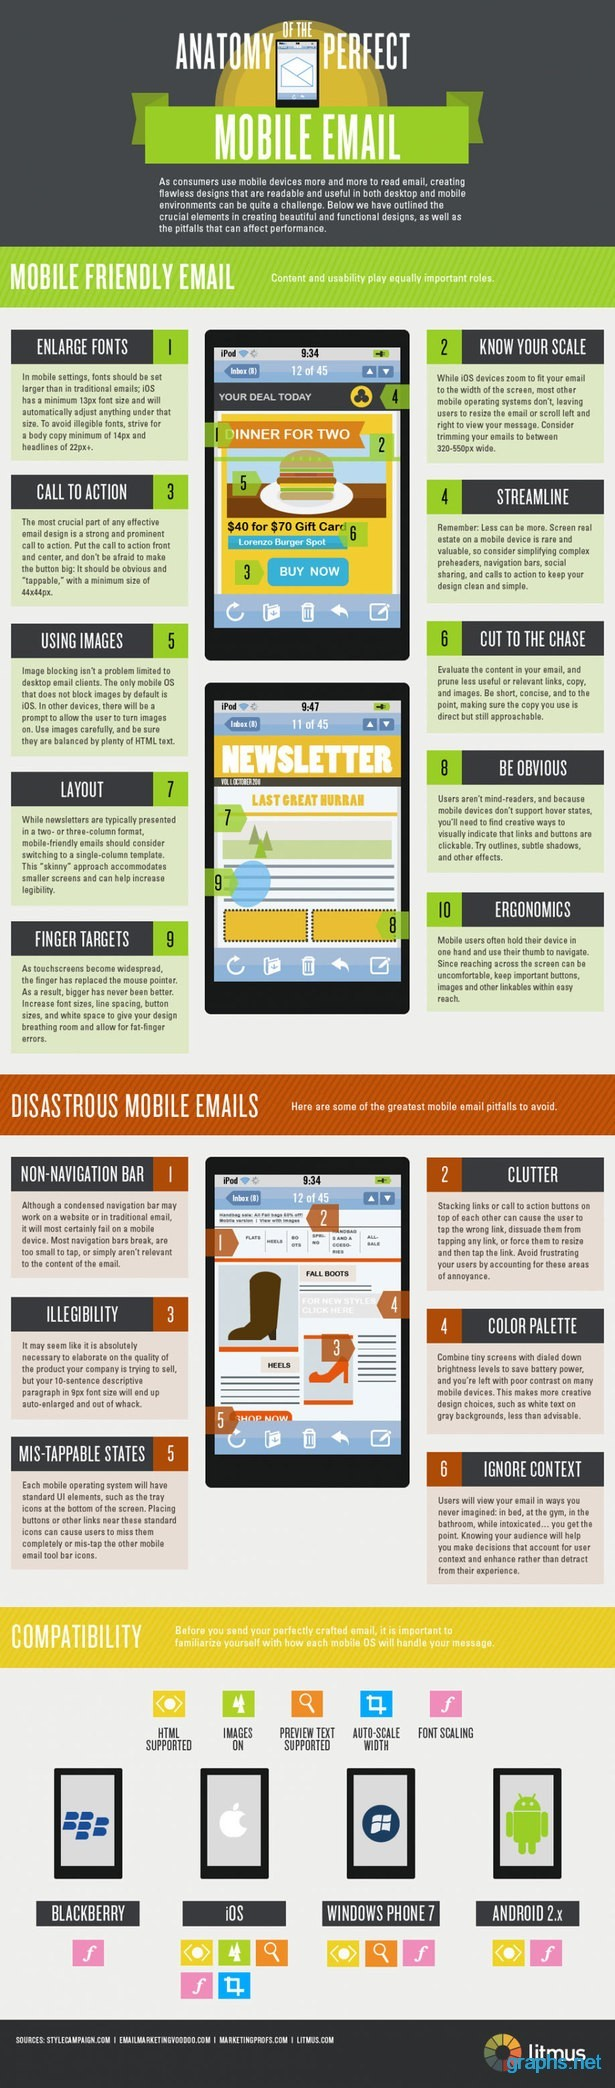 Anatomy Perfect Mobile Email